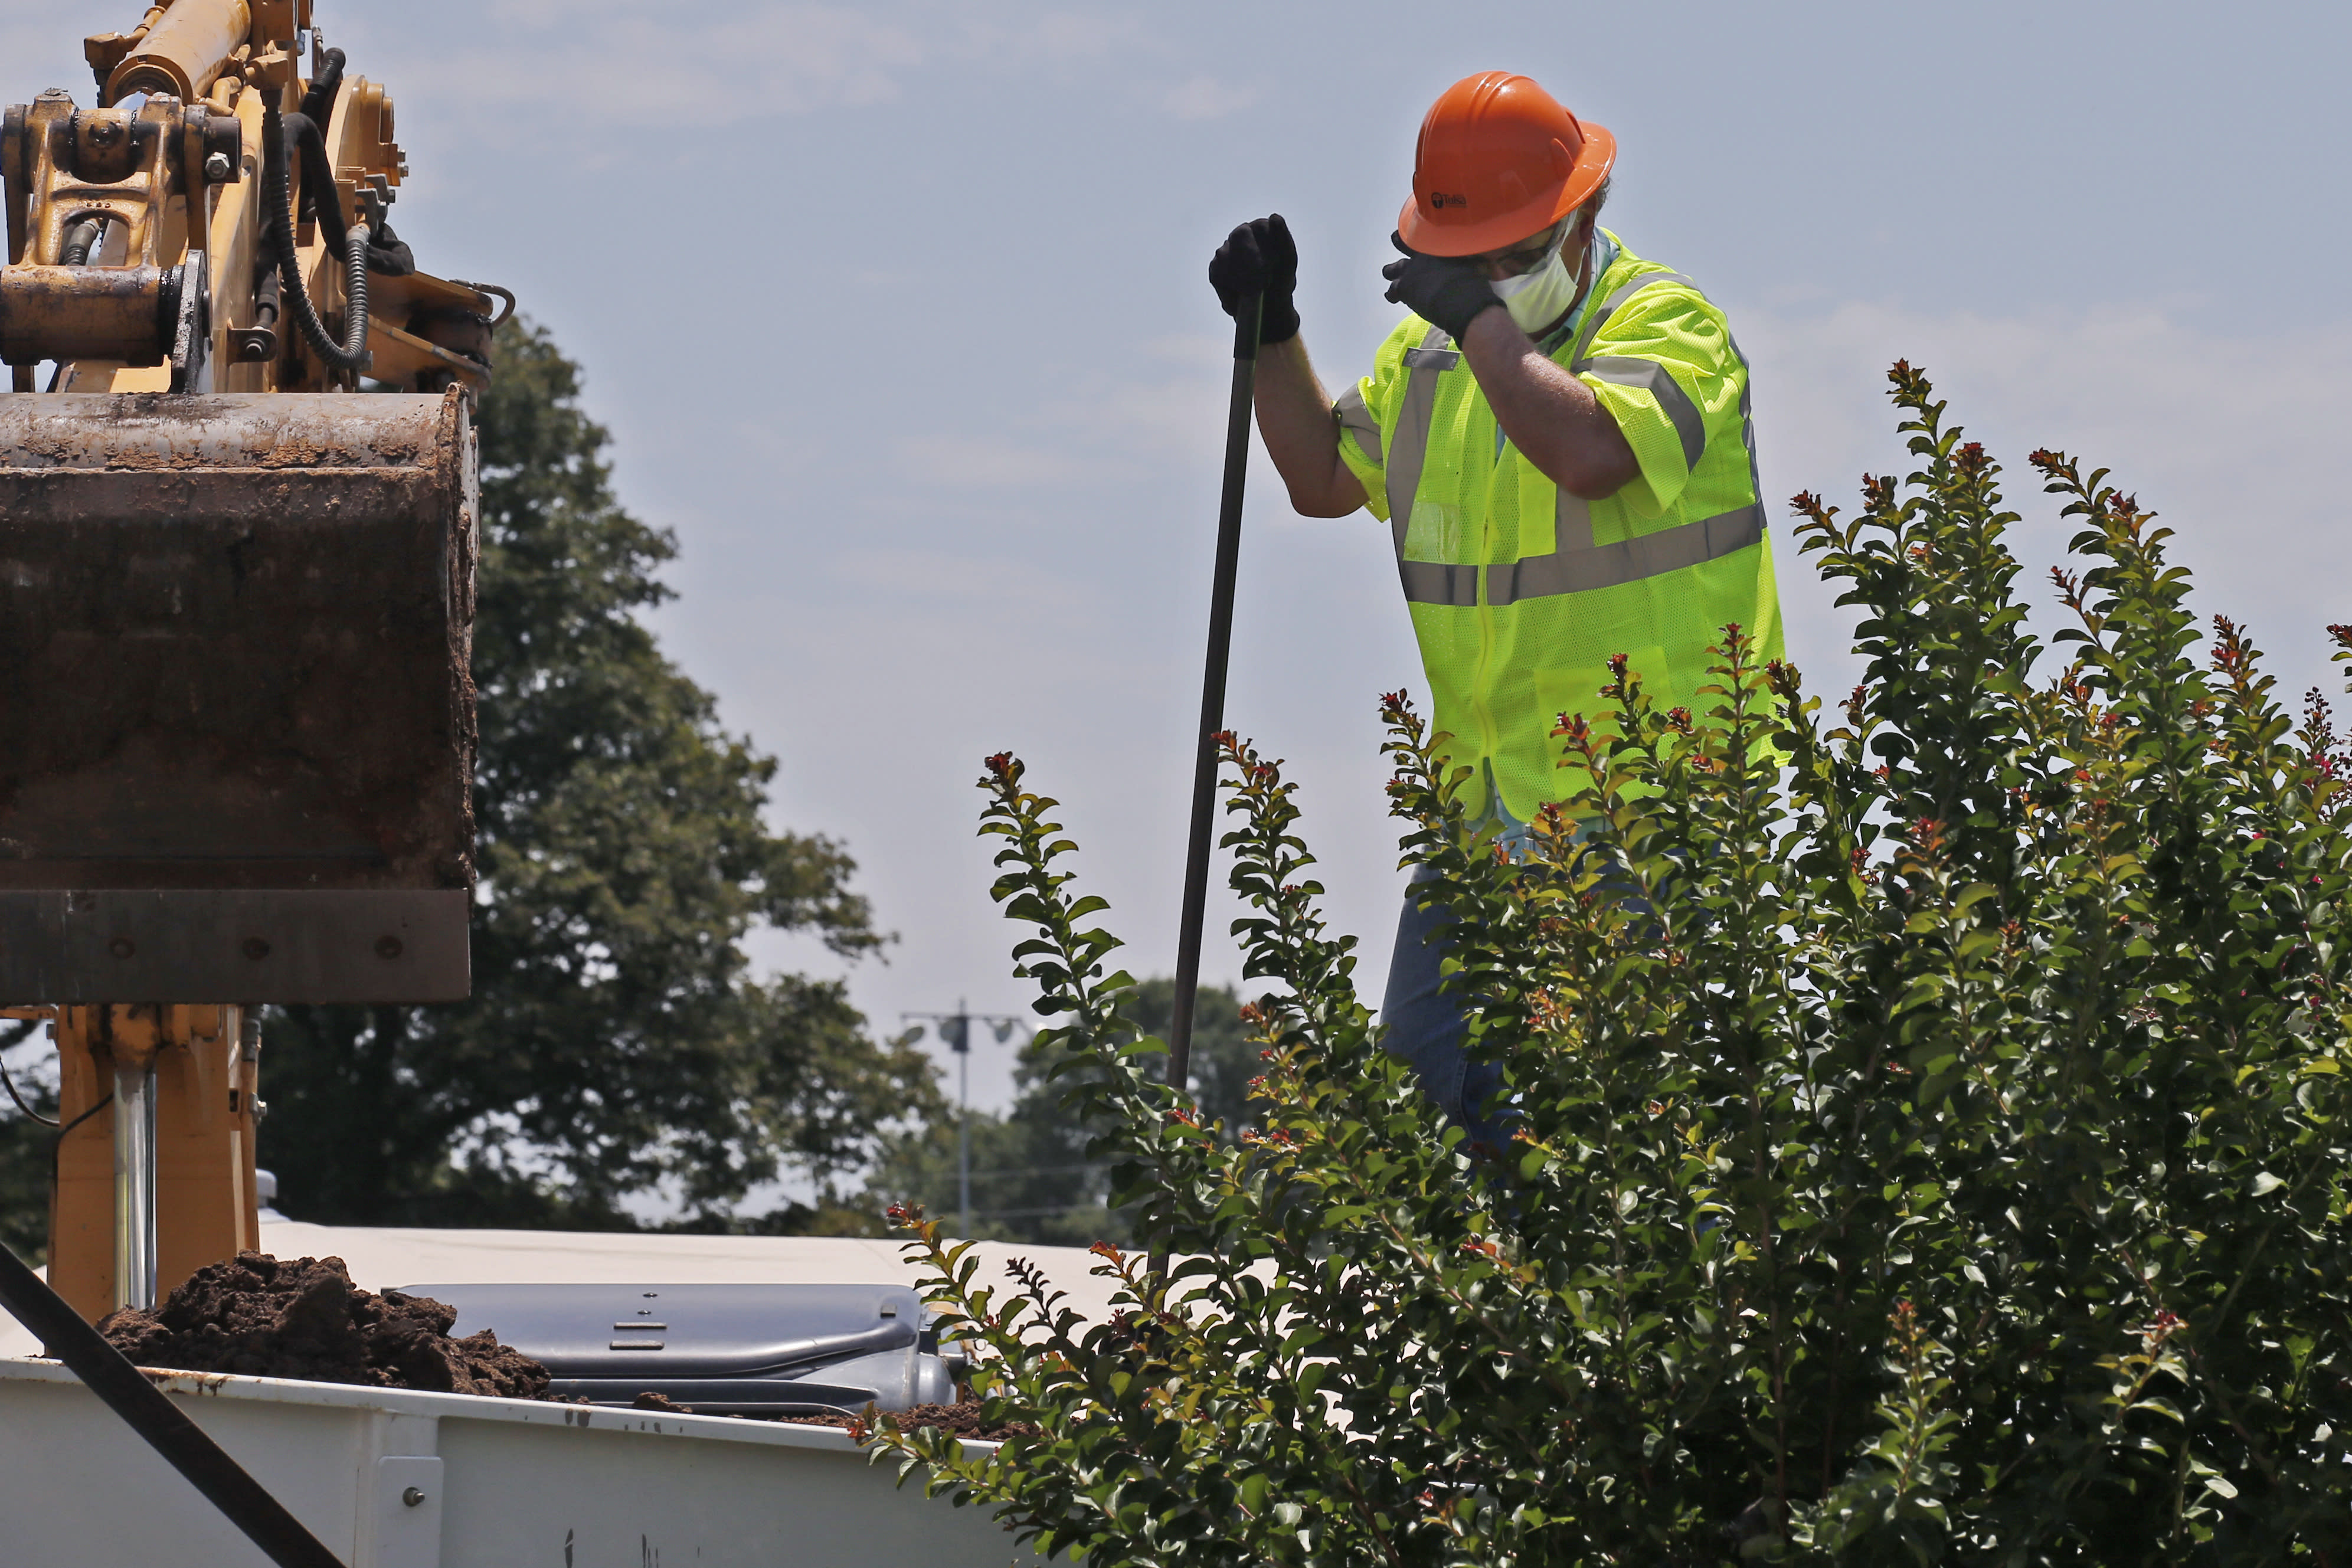 A worker pauses to wipe his face in the heat as work continues on an excavation of a potential unmarked mass grave from the 1921 Tulsa Race Massacre, at Oaklawn Cemetery in Tulsa, Okla., Tuesday, July 14, 2020. On May 31 and June 1 in 1921, white residents looted and burned Tulsa's black Greenwood district, killing as many as 300 people with many believed buried in mass graves. (AP Photo/Sue Ogrocki)